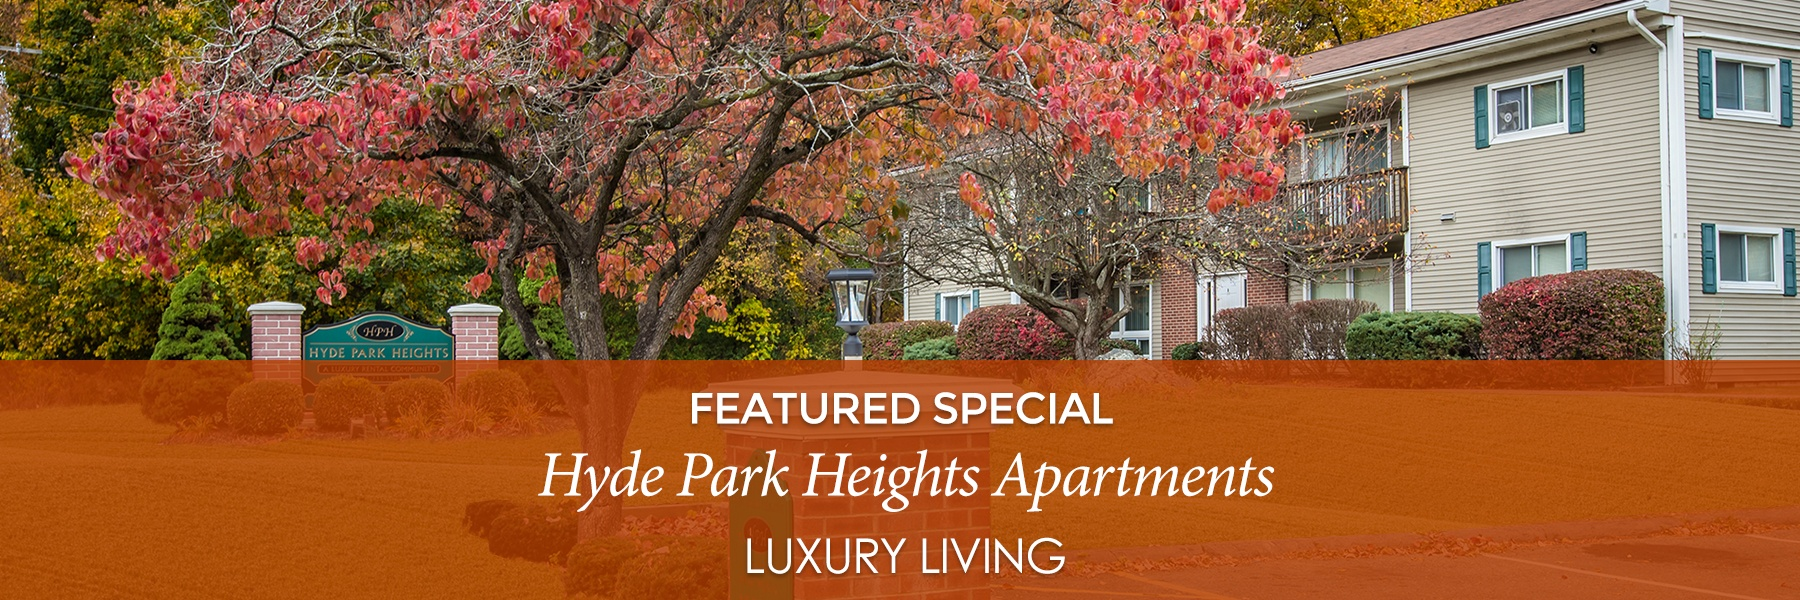 Hyde Park Heights Apartments For Rent in Hyde Park, NY Specials